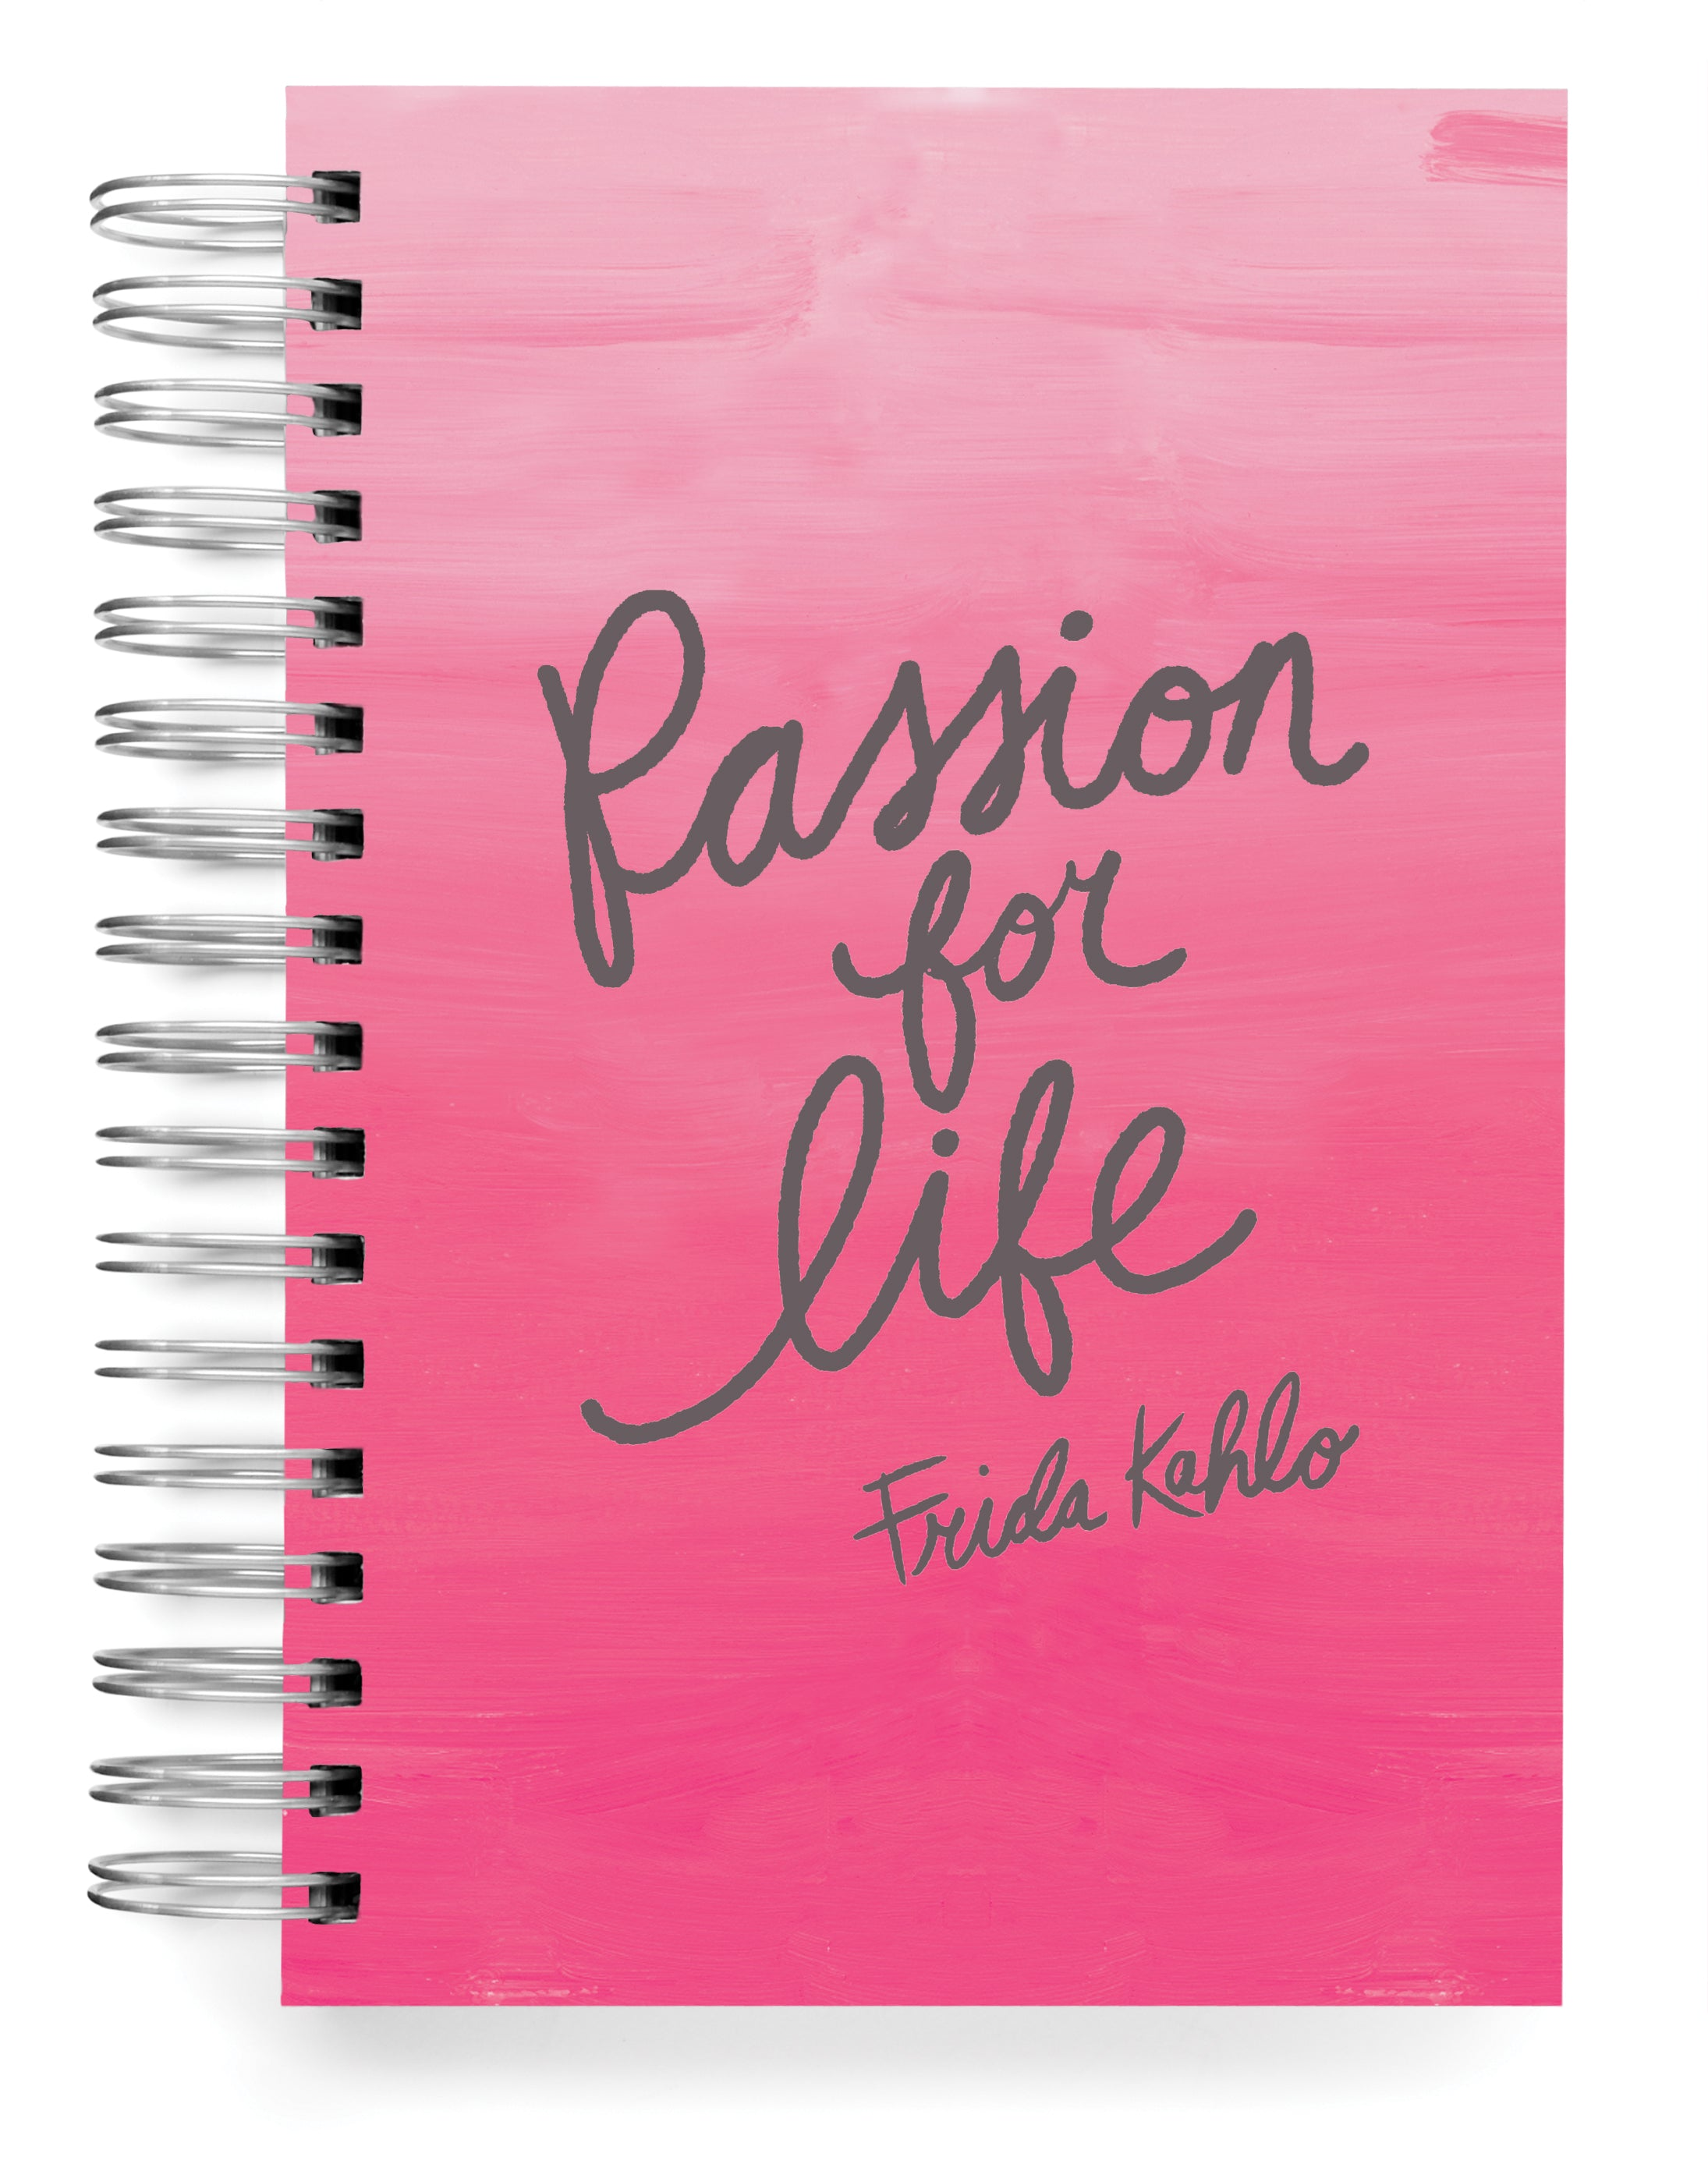 Passion for life Jumbo Journal